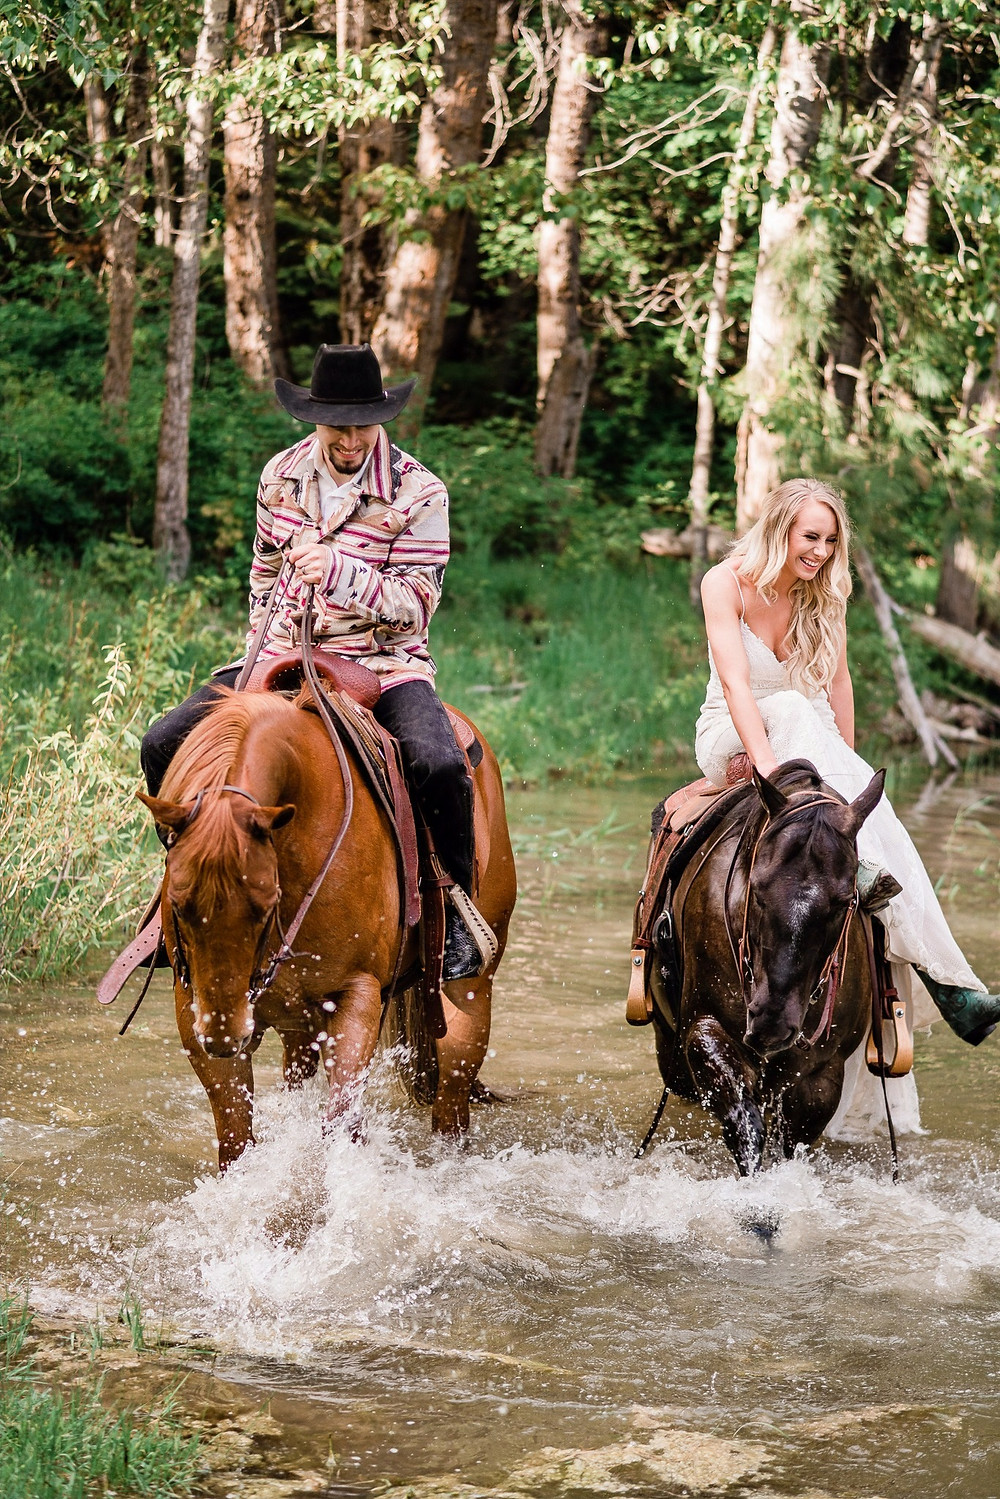 Cassy and Jake riding their horses through a pond in Rathdrum, Idaho